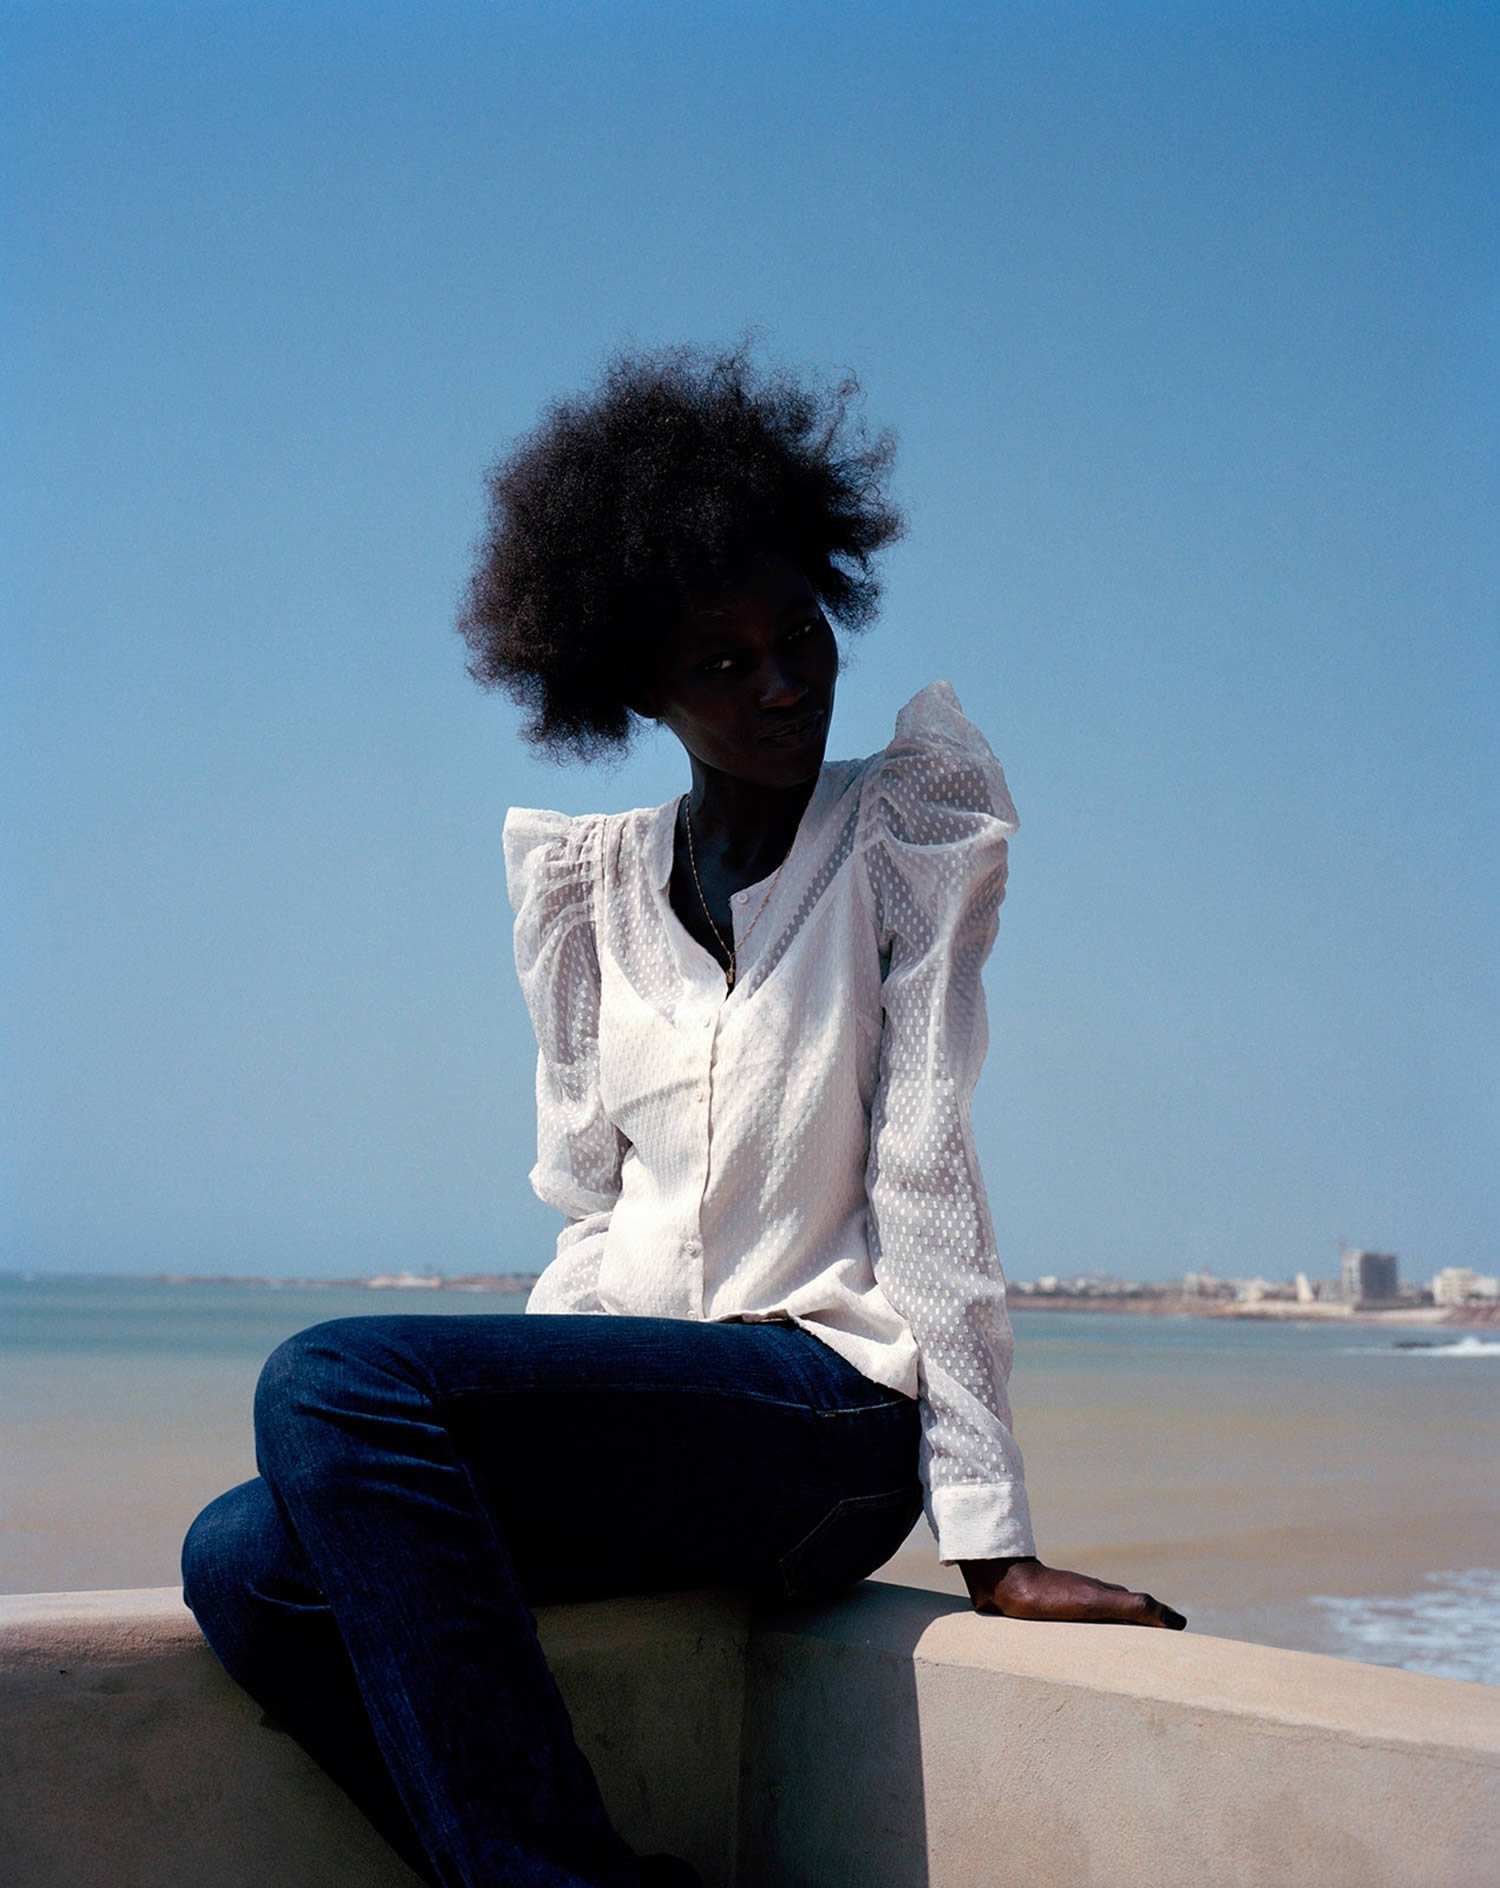 african woman in white blouse, photo by viviane sassen